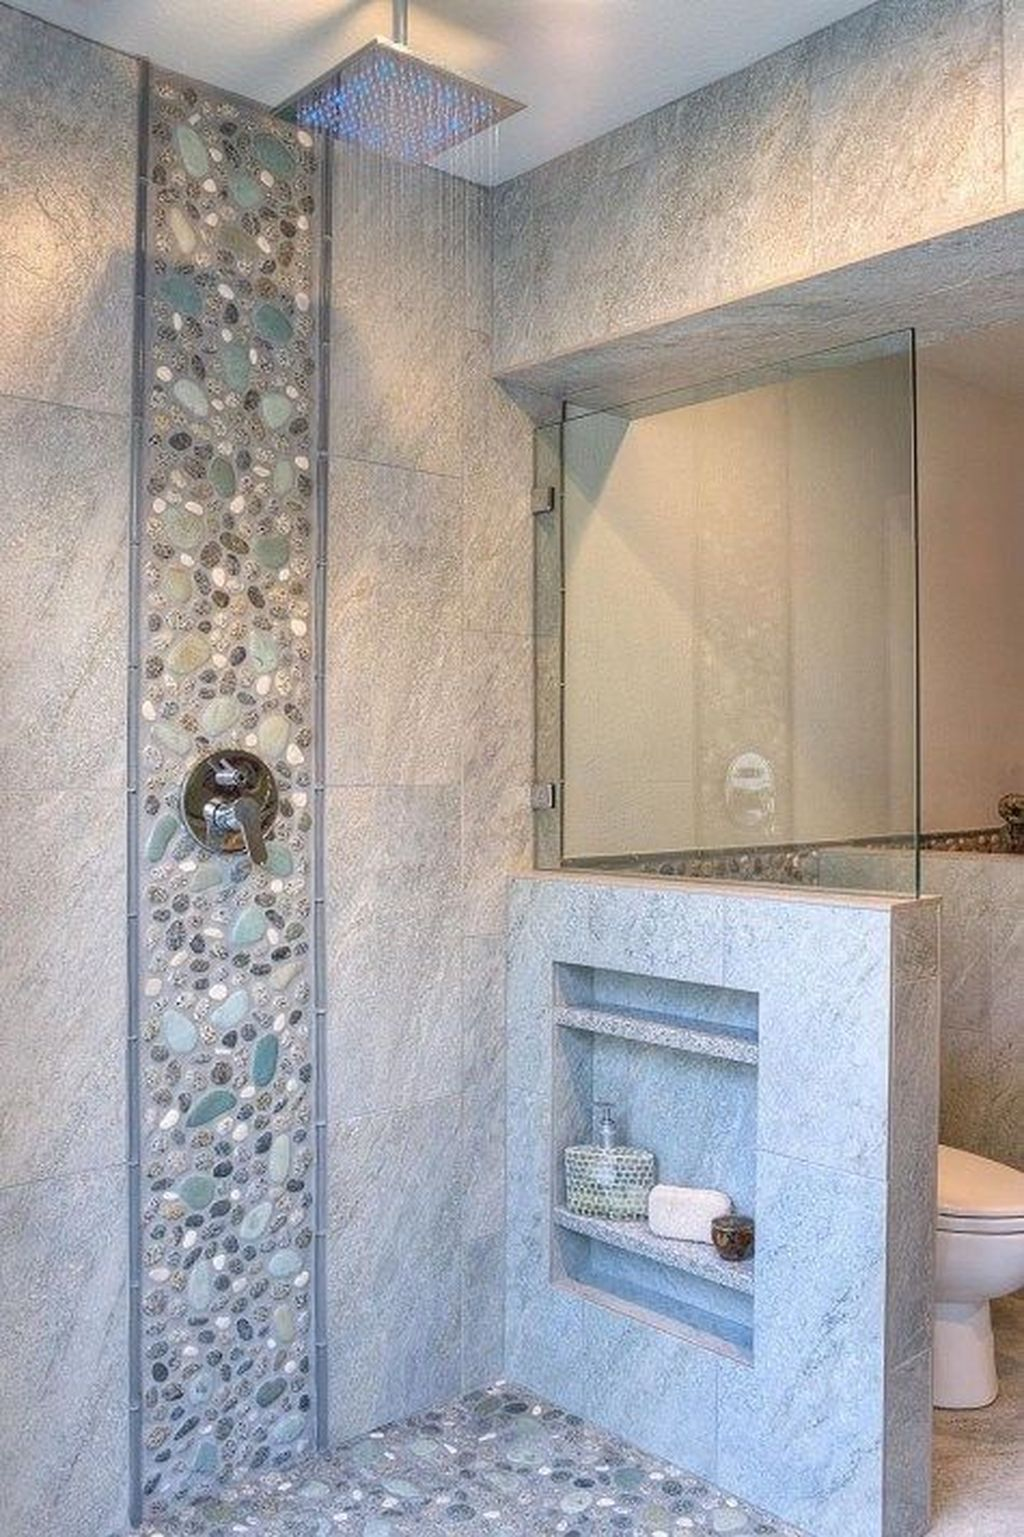 The Best Stone Tile Bathroom Ideas To Decorate Your Bathroom 12